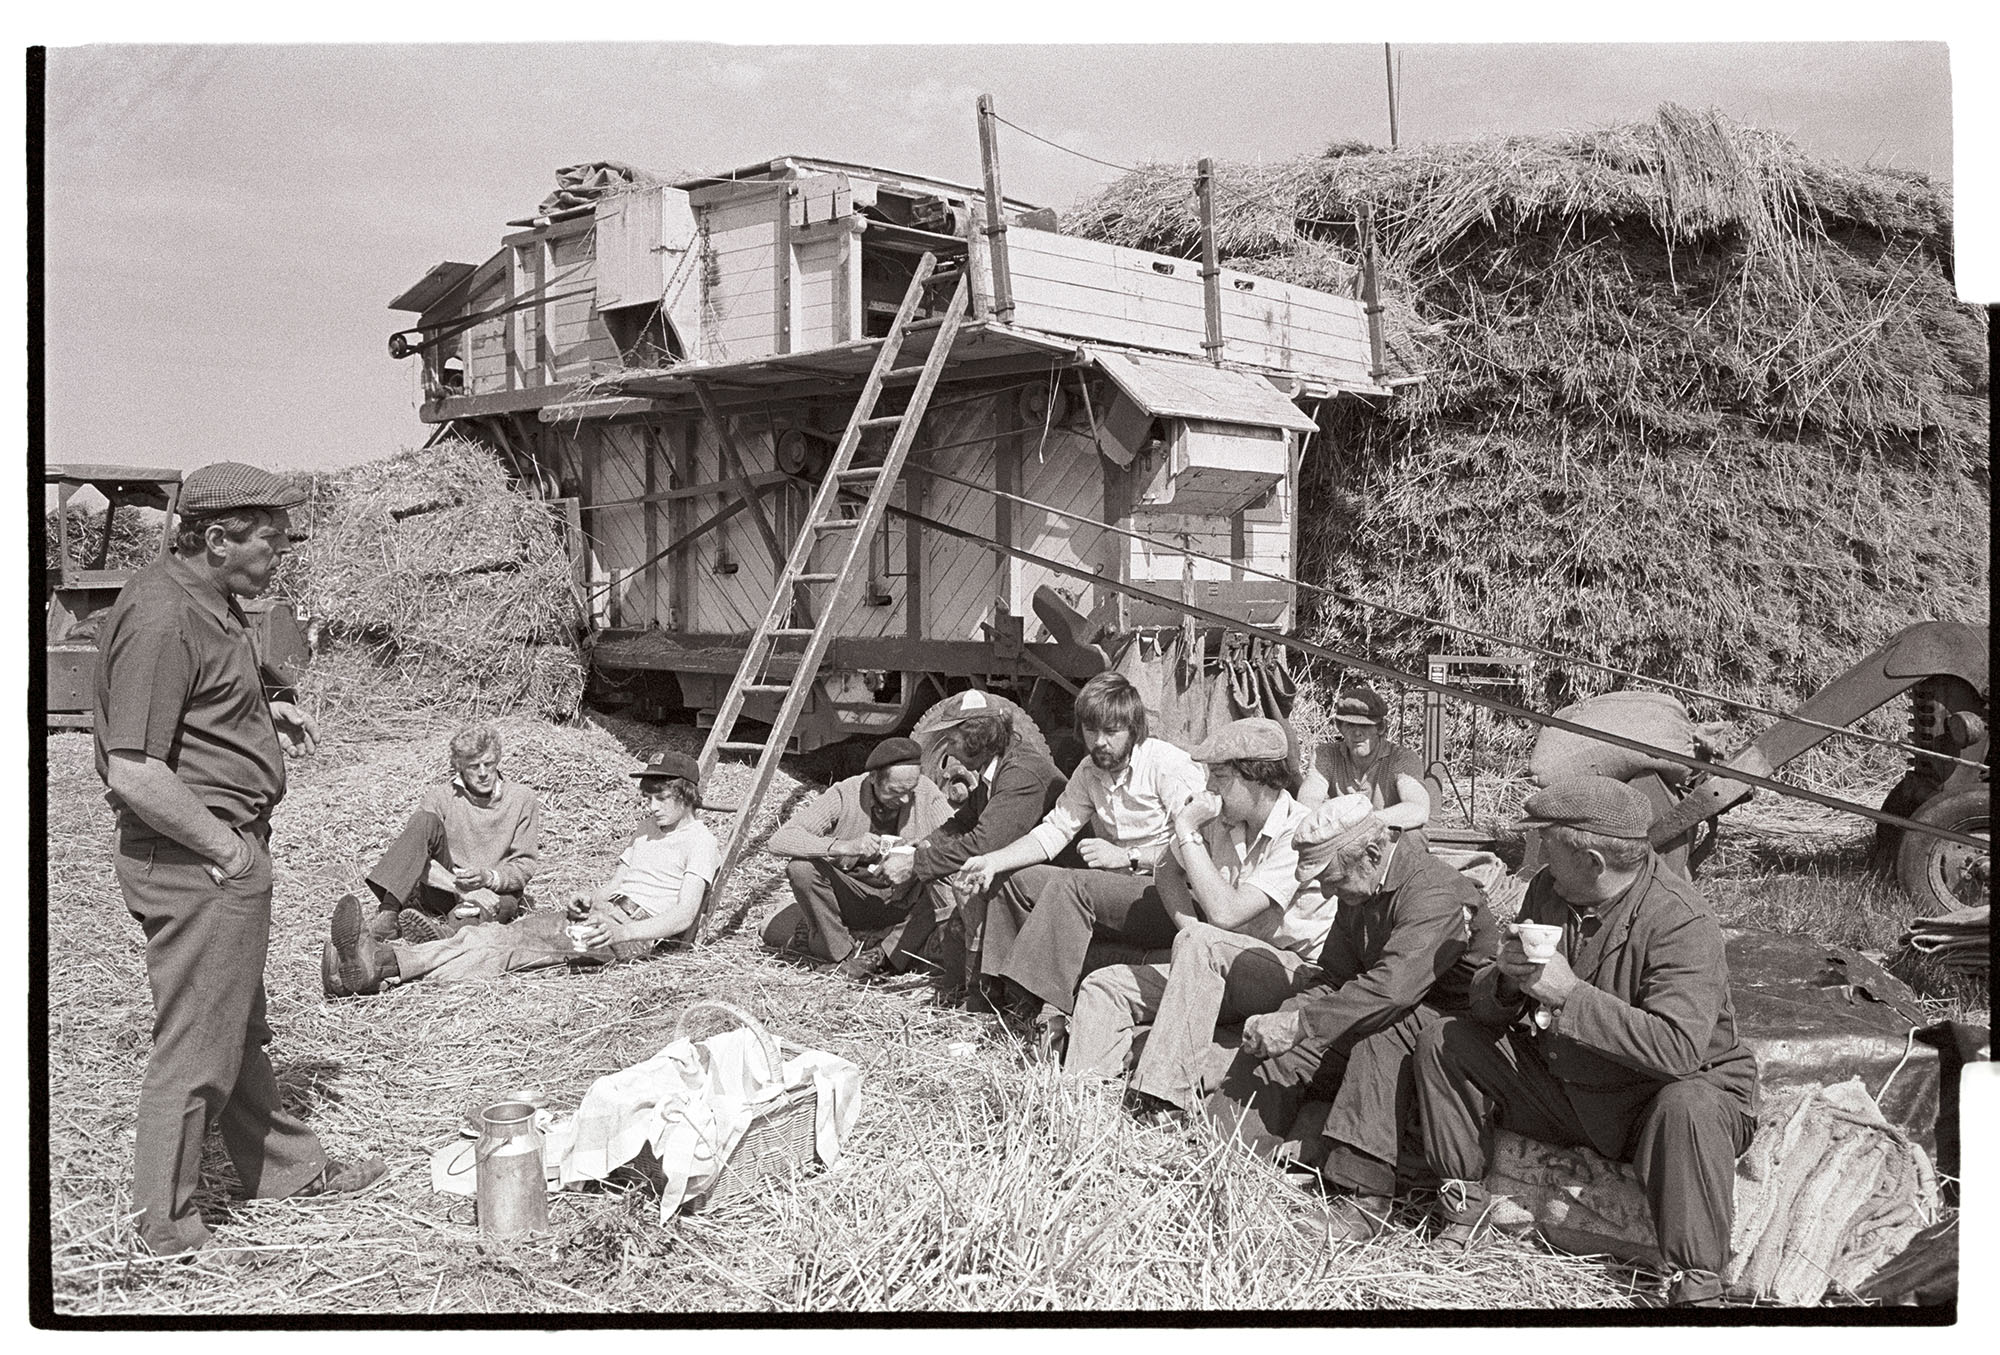 Reed comber's tea break, seated in front of reed comber. <br /> [A group of farm labourers or reed combers sat down in a field of wheat drinking tea at Westacott, Riddlecombe. A flask and picnic hamper is in the foreground, and a reed comber, ladder and wheatrick can be seen in the background.]